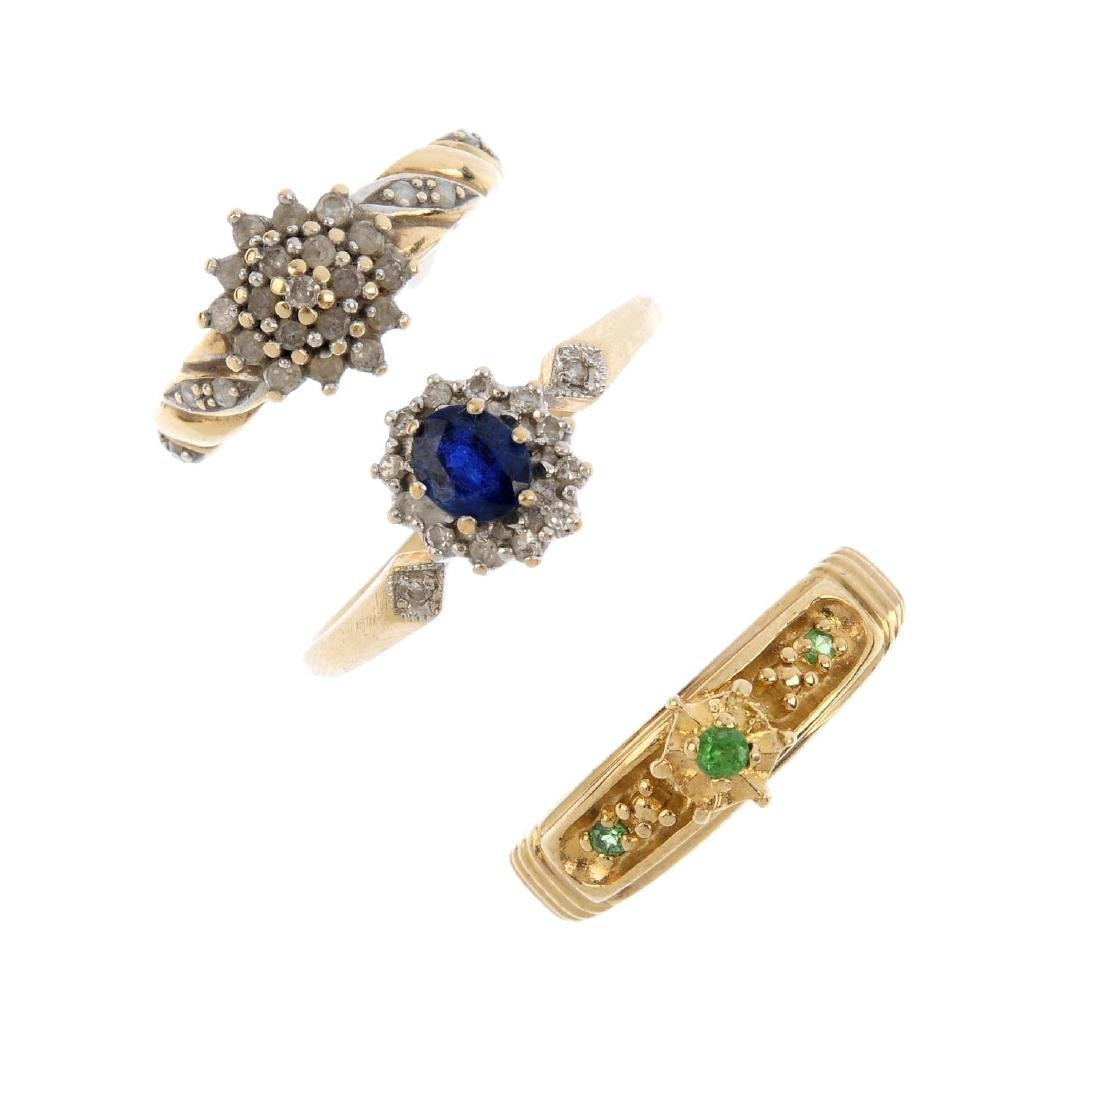 Five 9ct gold gem-set and diamond rings. To include a